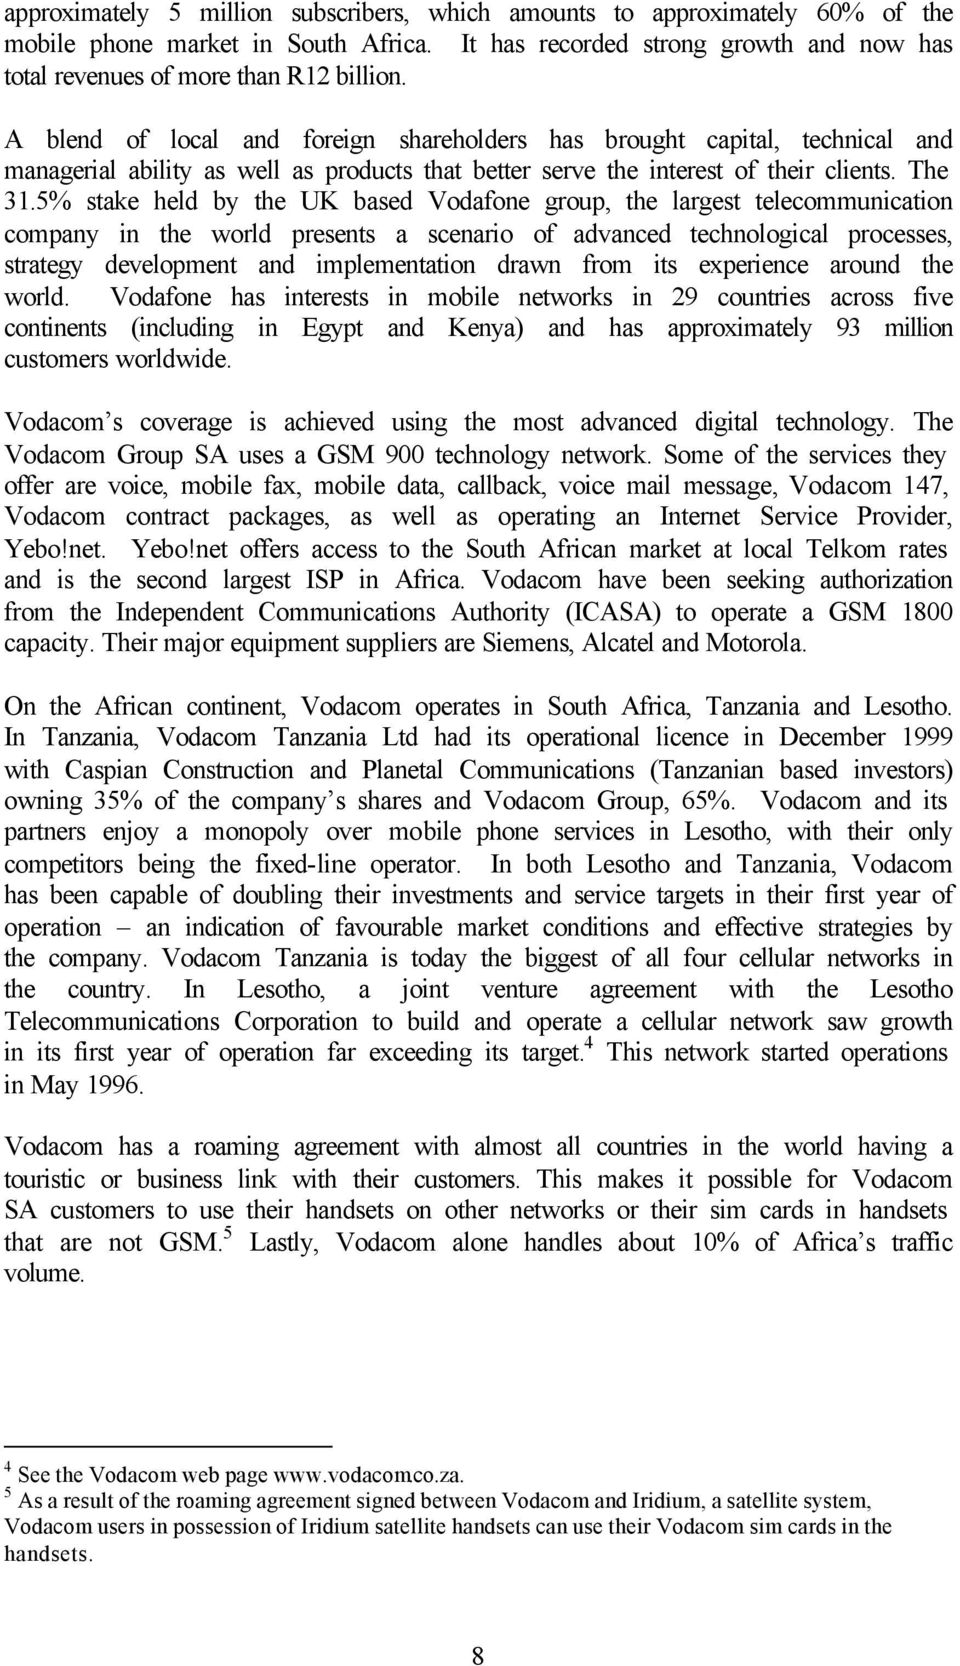 5% stake held by the UK based Vodafone group, the largest telecommunication company in the world presents a scenario of advanced technological processes, strategy development and implementation drawn